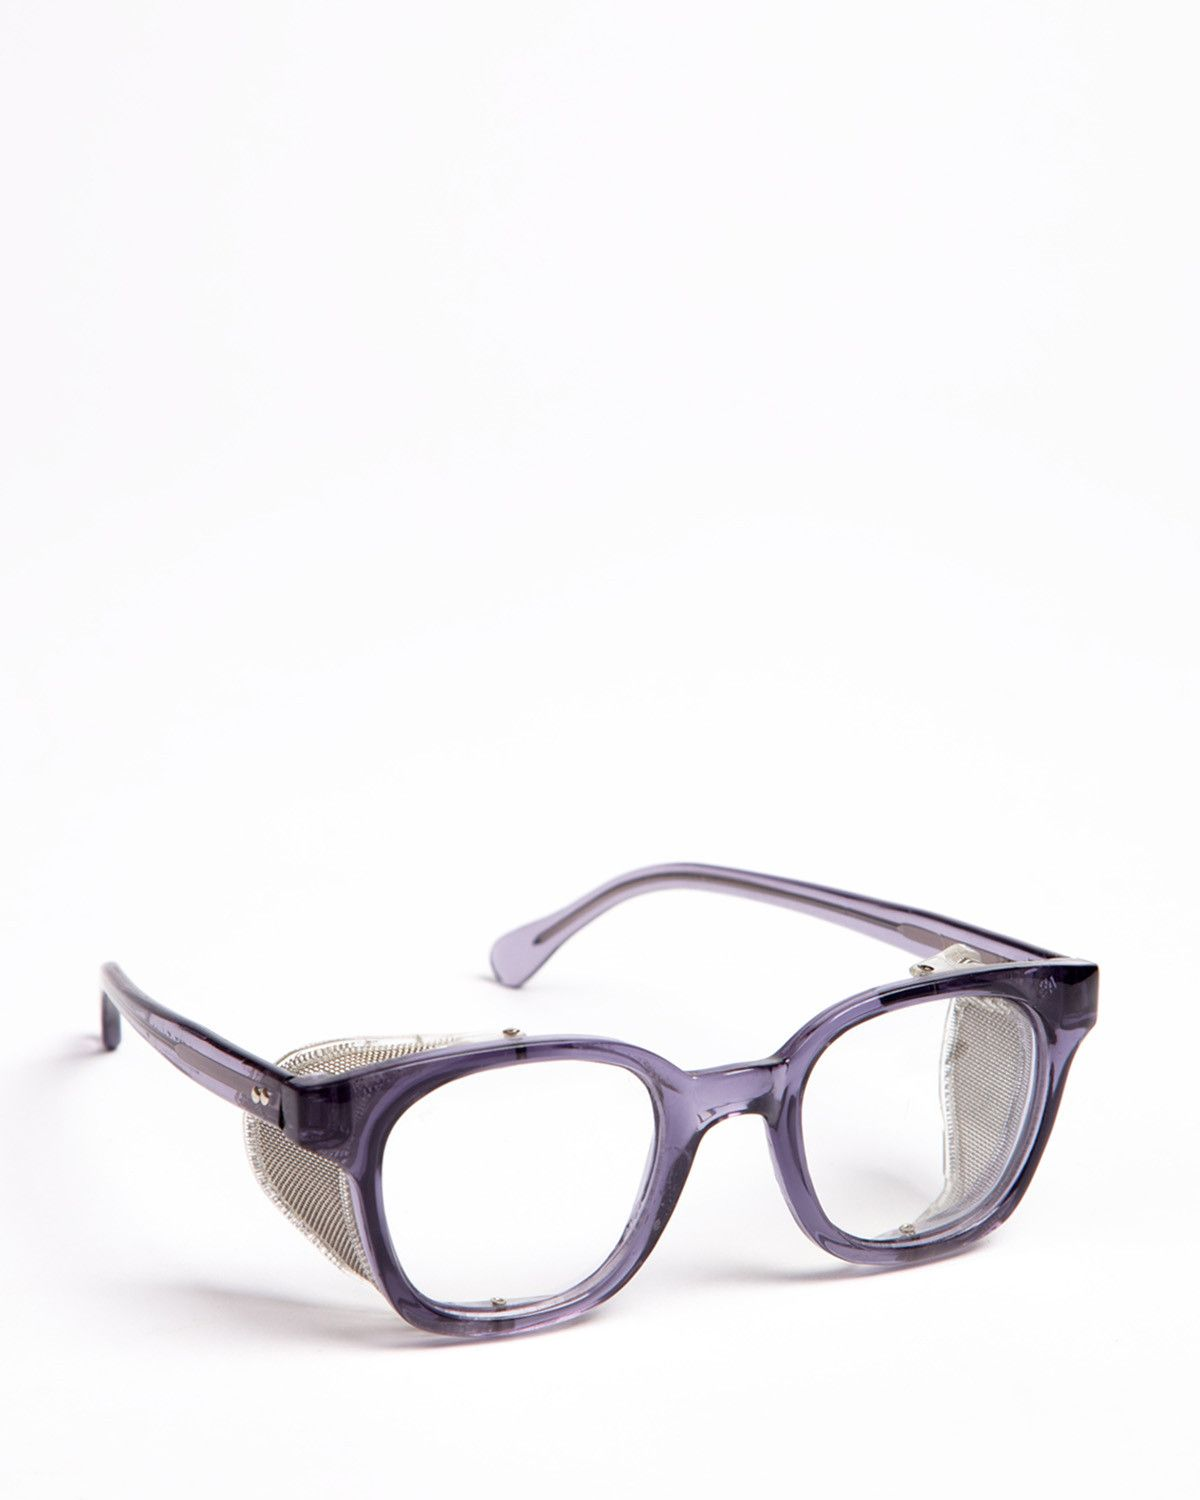 Spectacle Clear Lens Cool things to buy, Spectacles